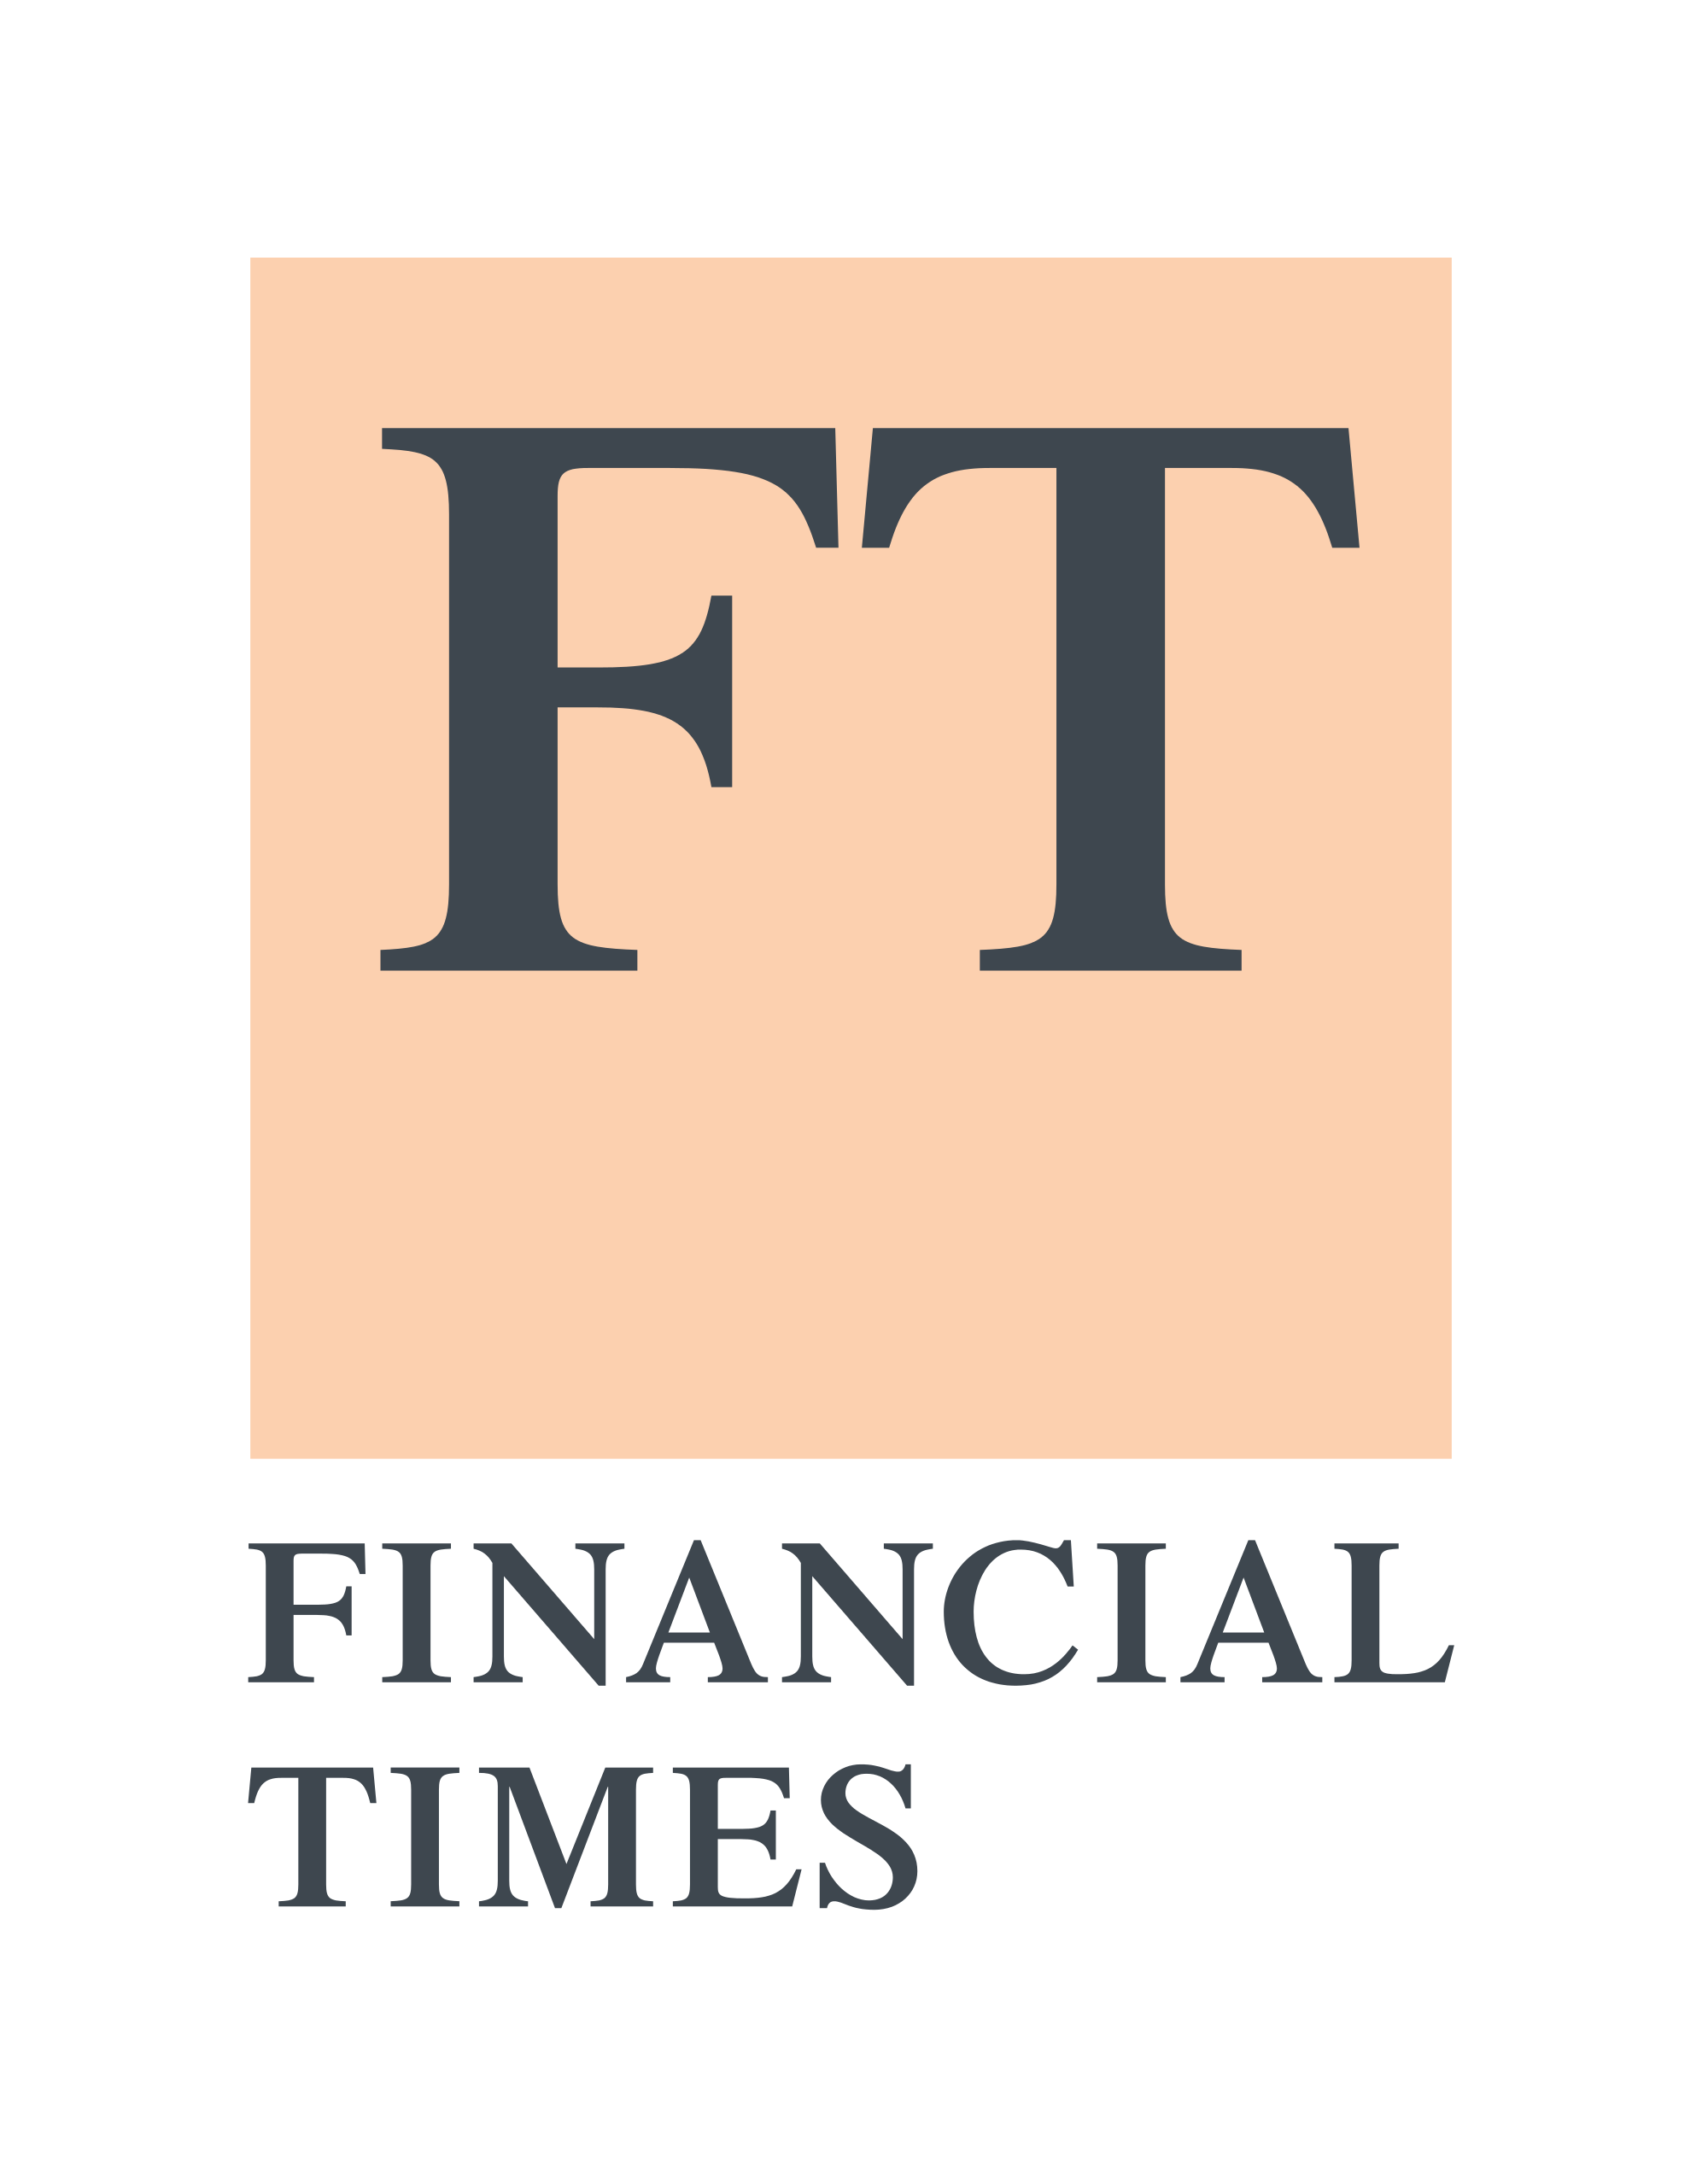 Financial times historical archive